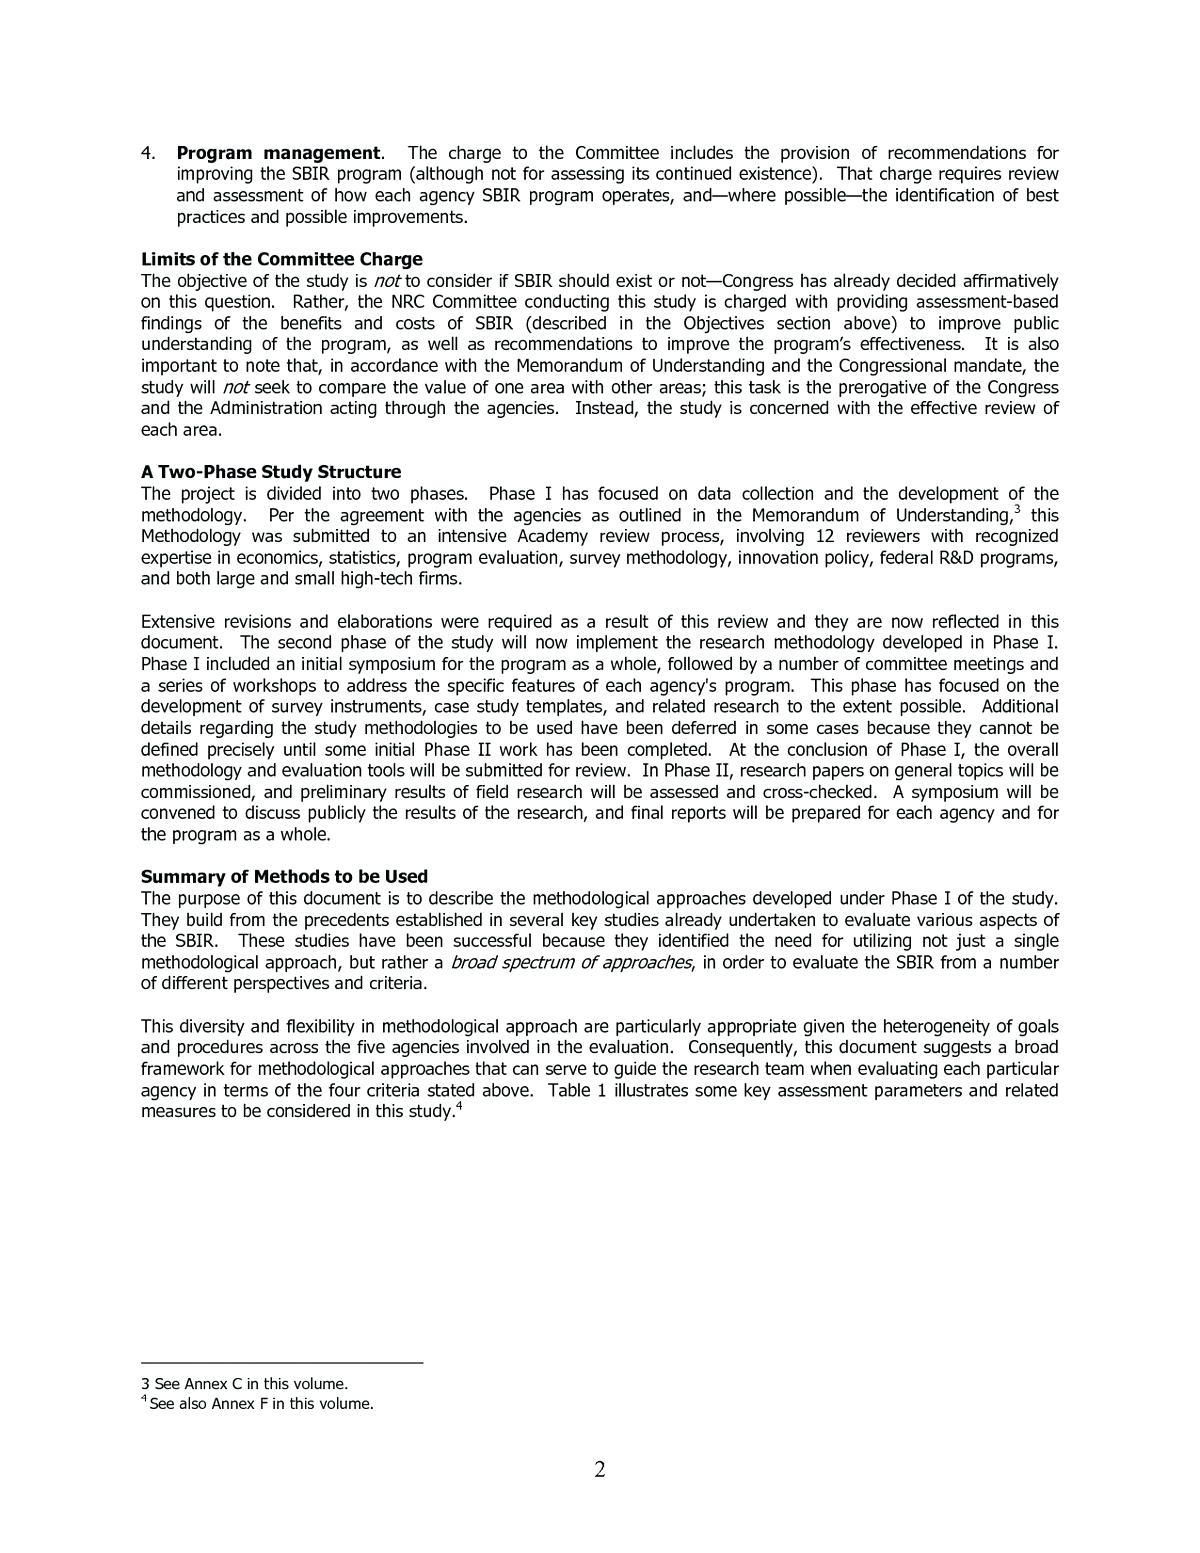 003 Project Management Executive Summary Template Format For Report Pics Large Plan Fantastic Of A Research Paper Example Full